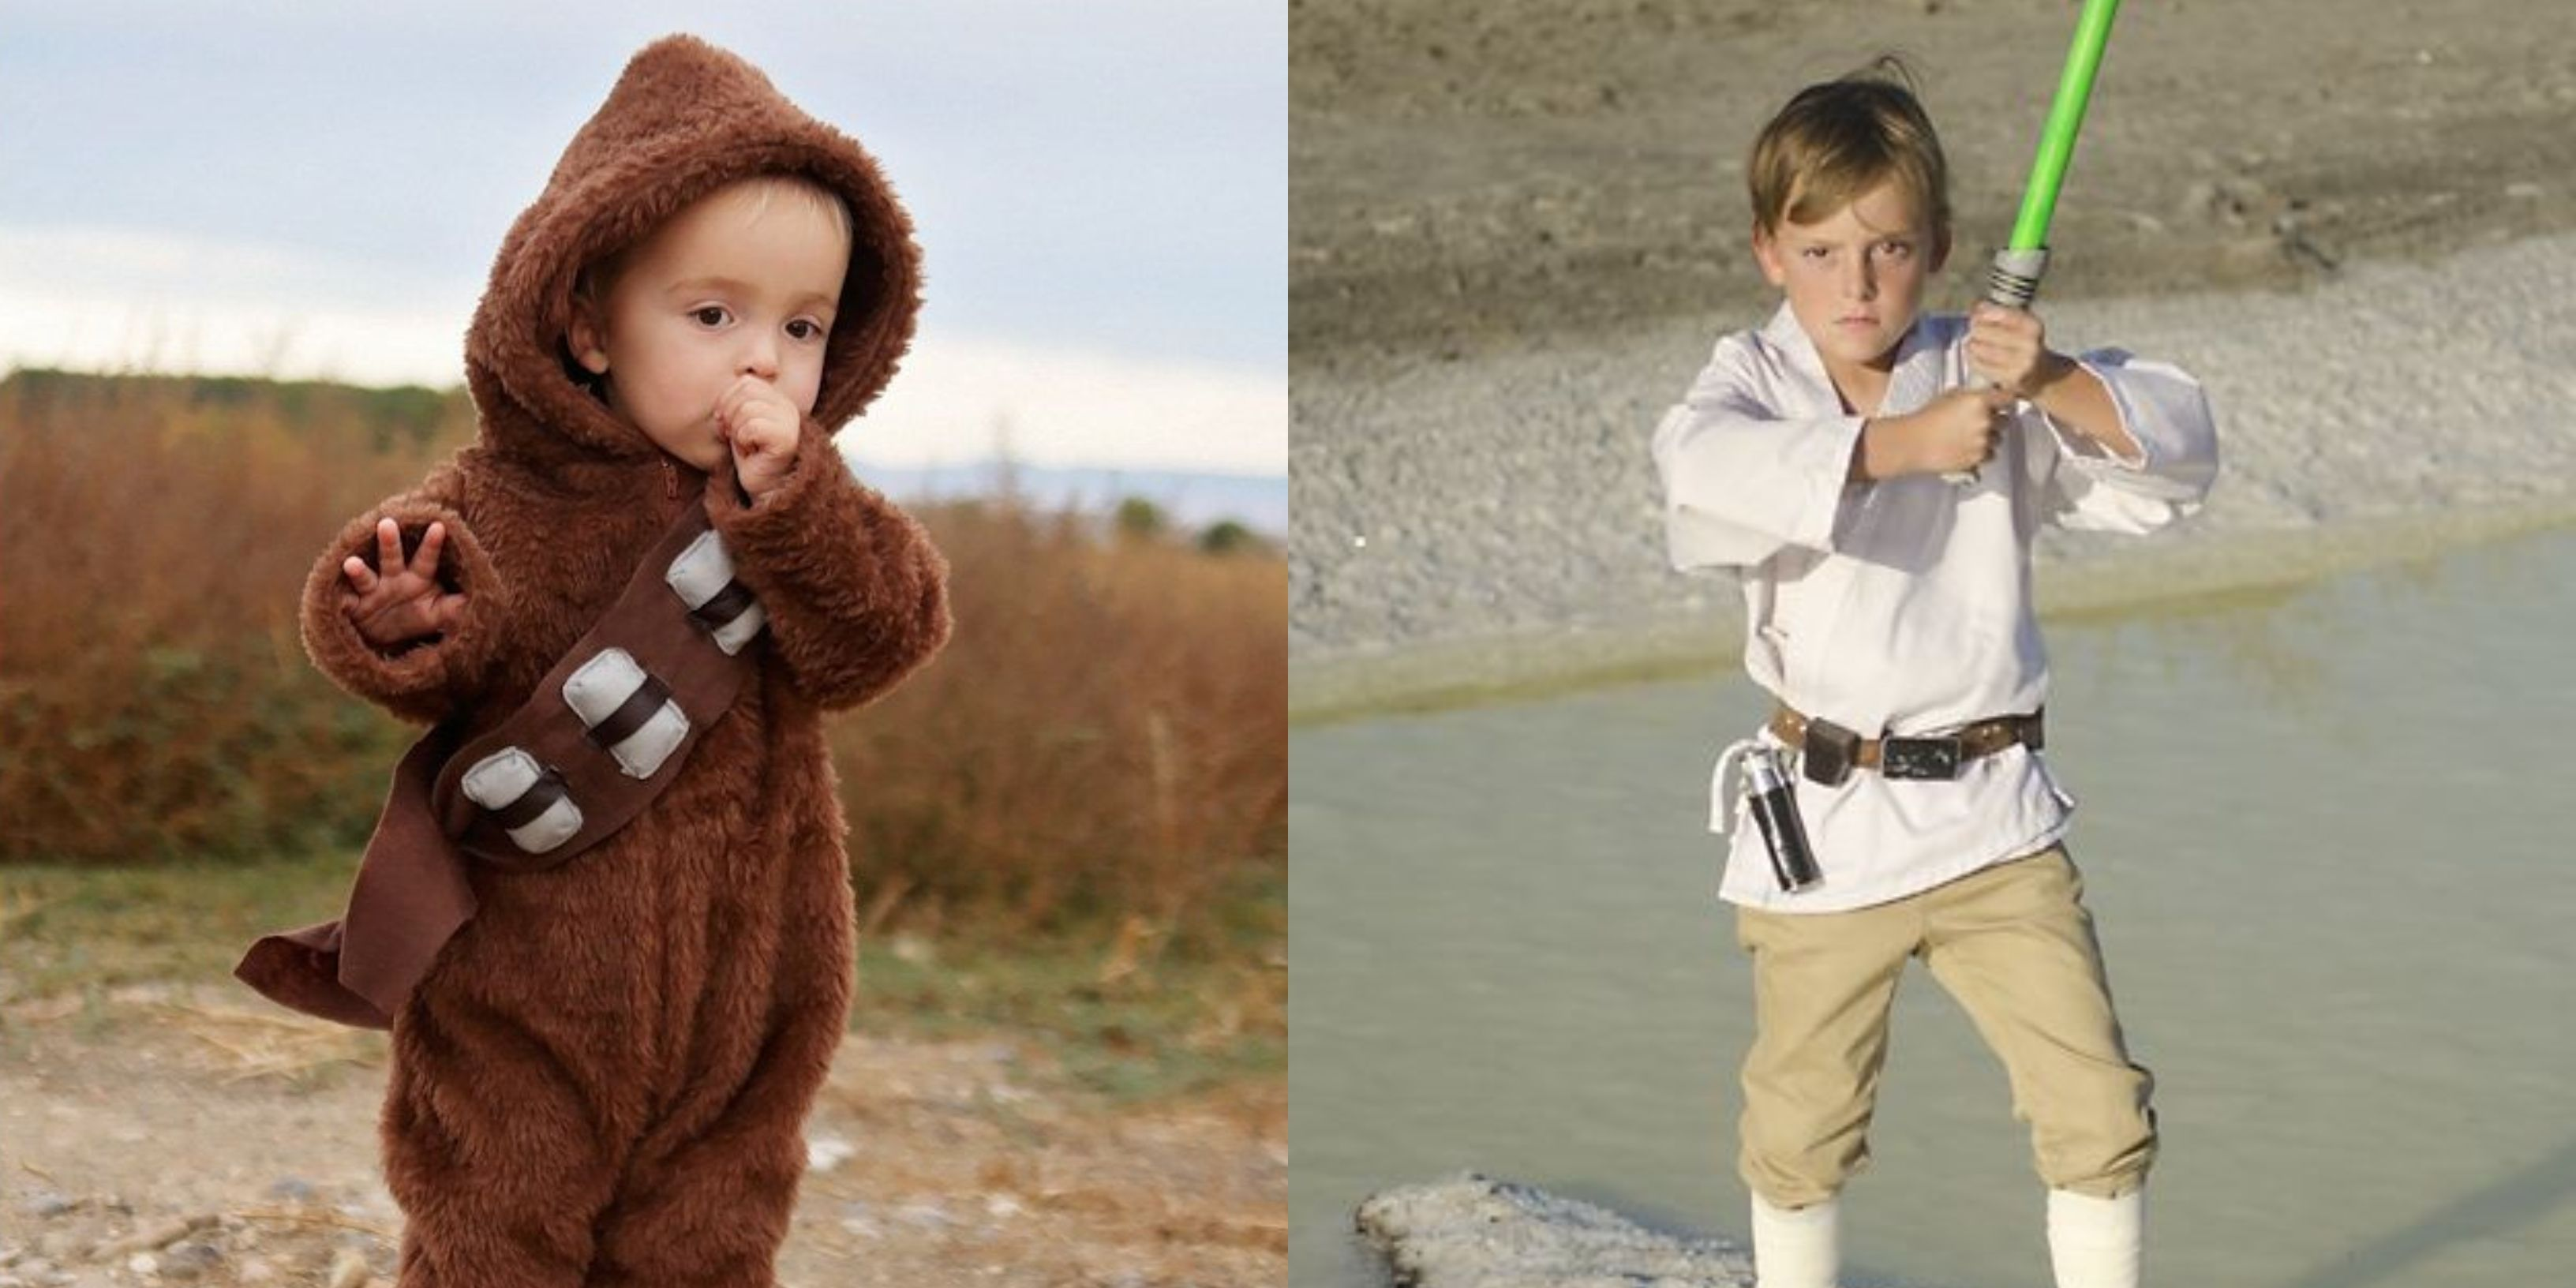 Chewbacca Costume For Babies